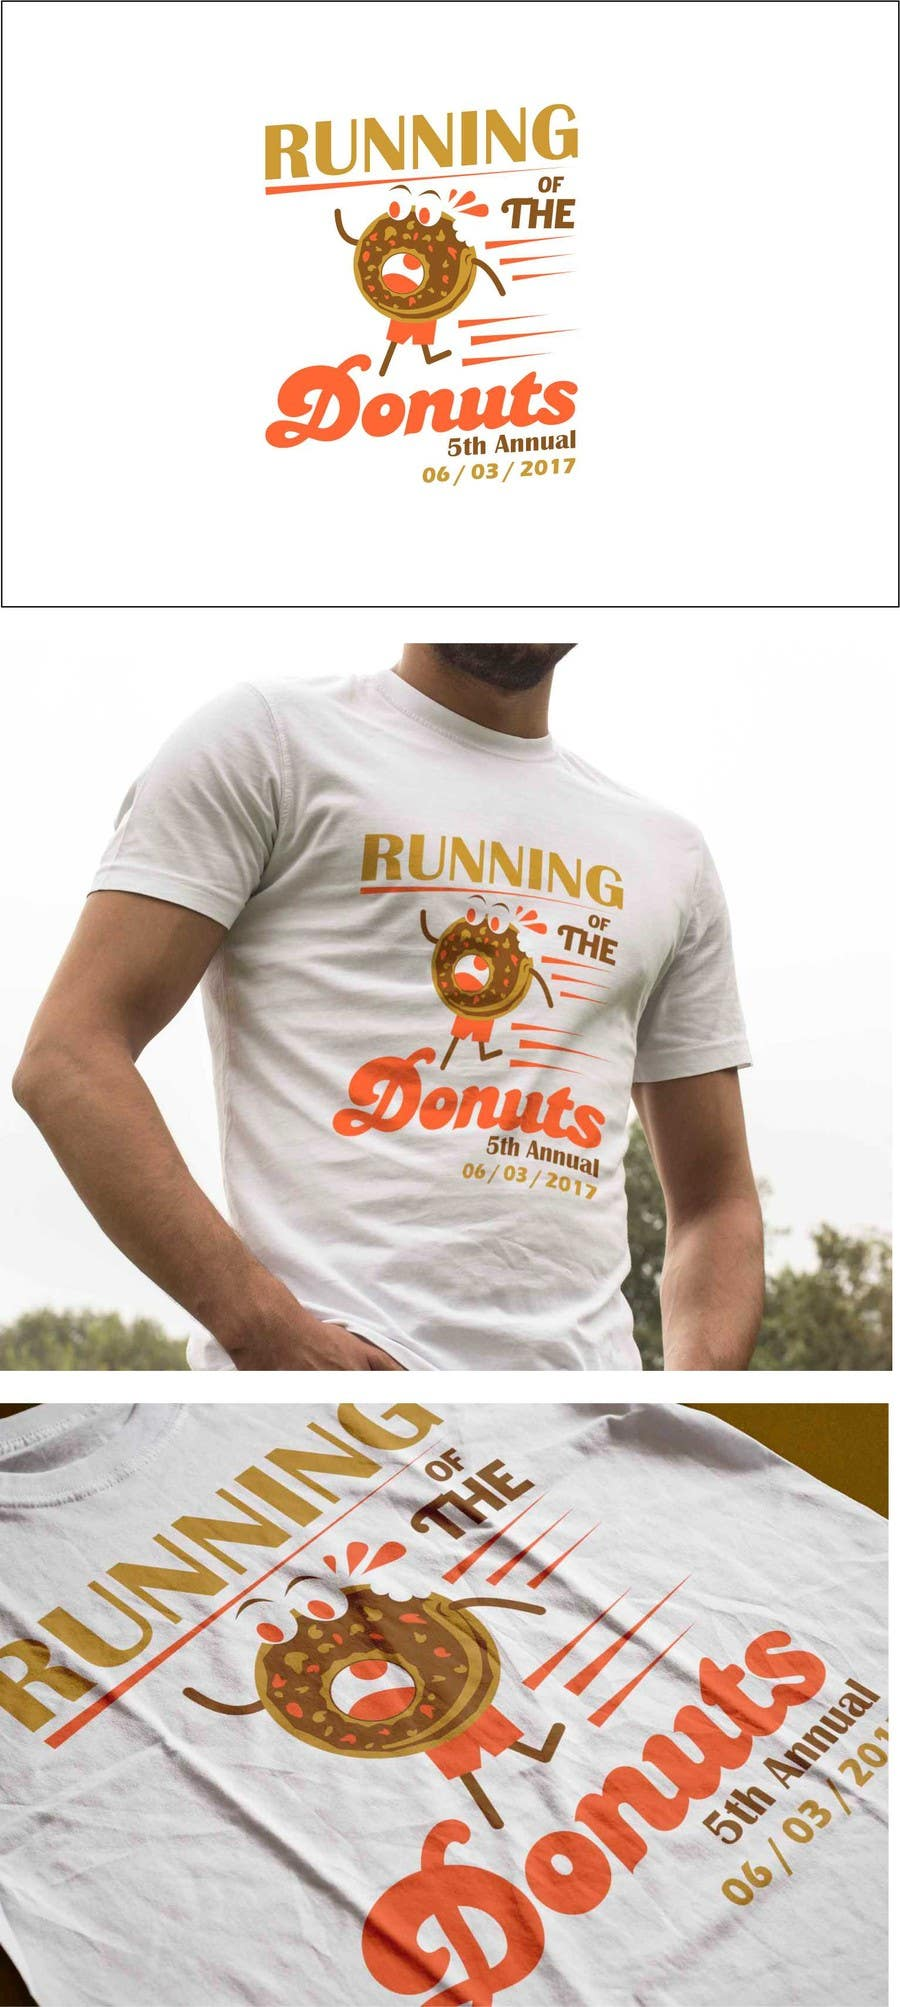 Proposition n°10 du concours Design a T-shirt for the 5th Annual Running of the Donuts